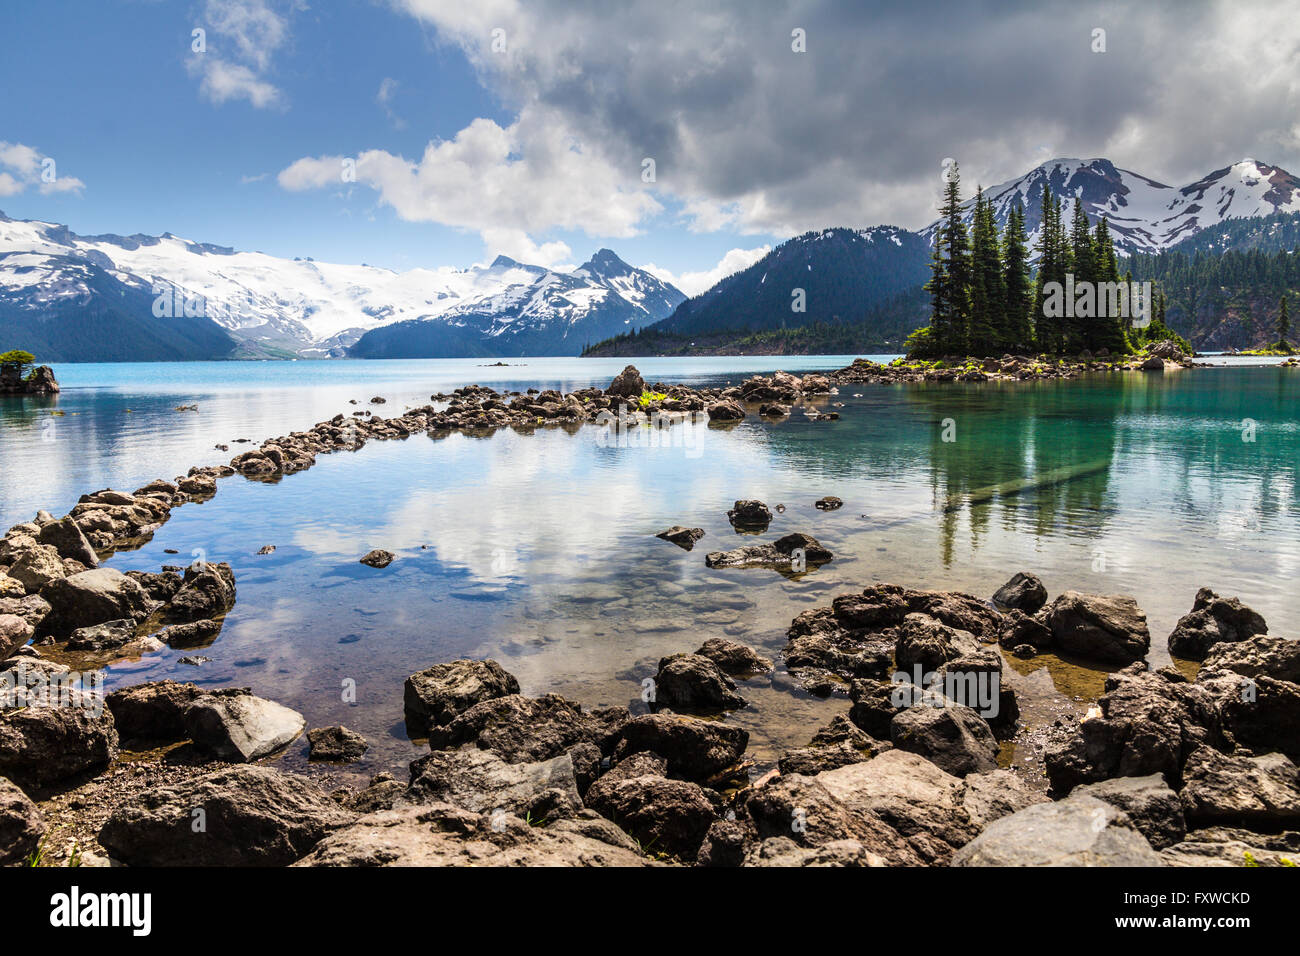 Tranquil, clear waters of Garibaldi lake reflect trees and mountains in shades of blue, emerald and bottle and green - Stock Image